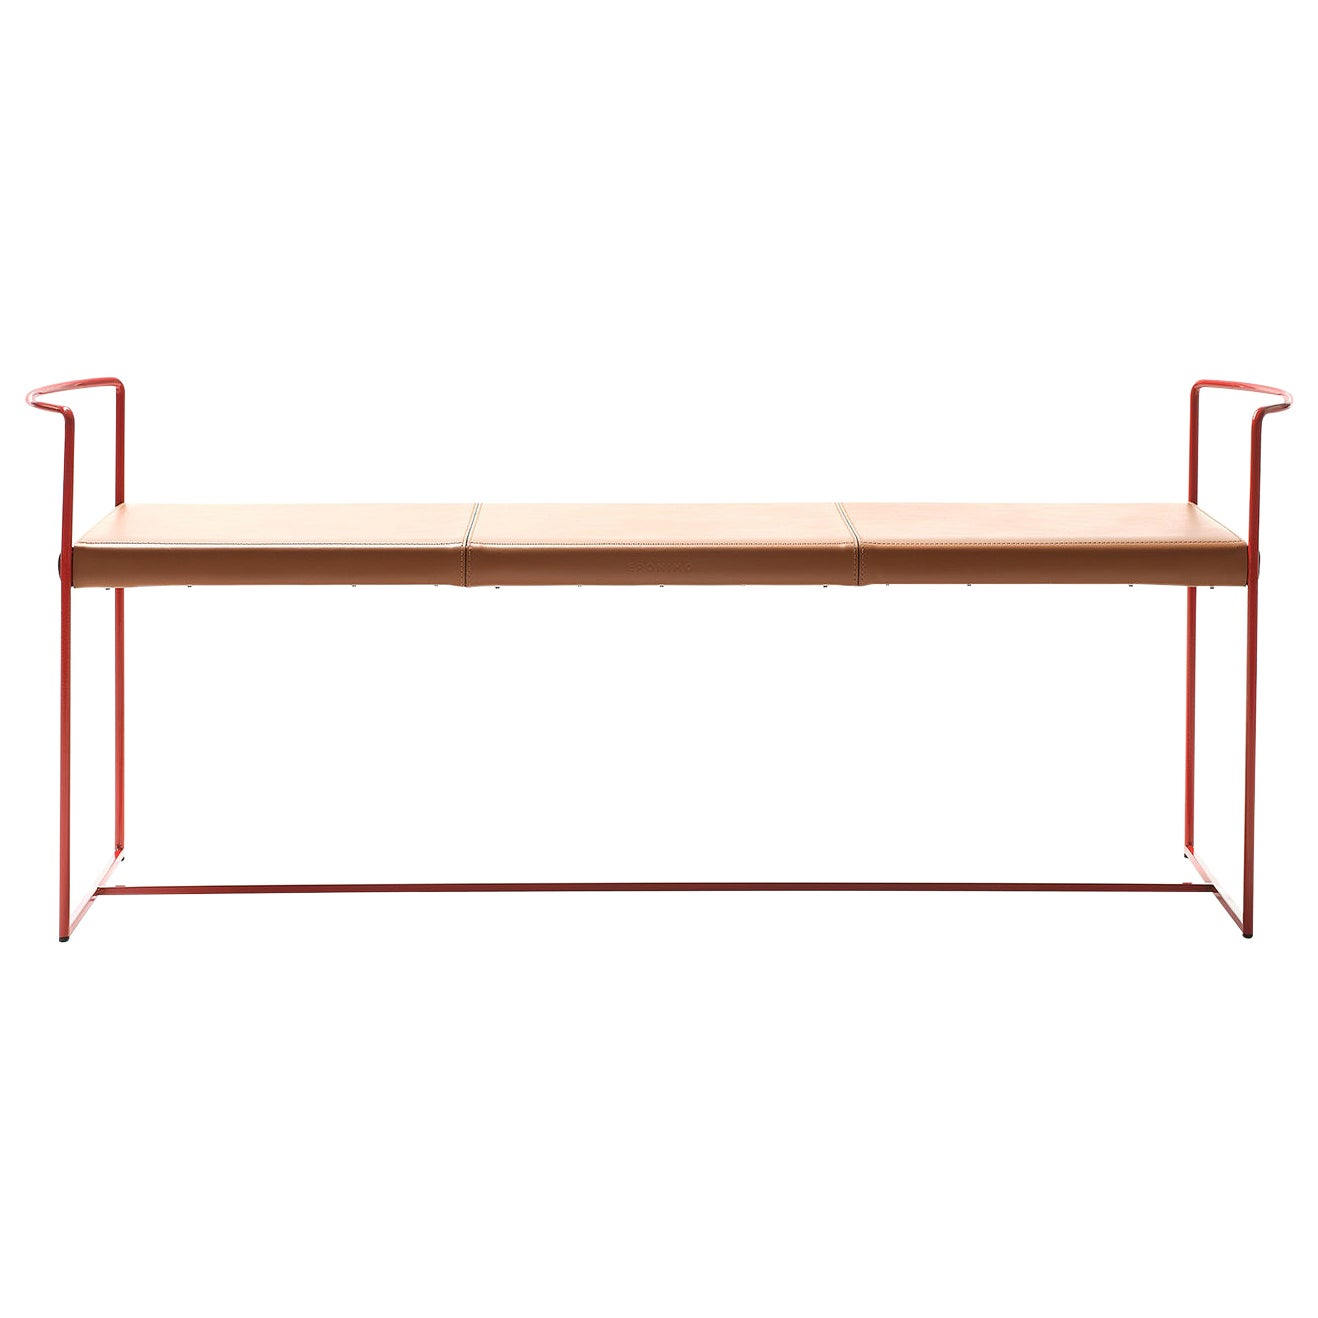 New Outline Red Bench by Alberto Colzani